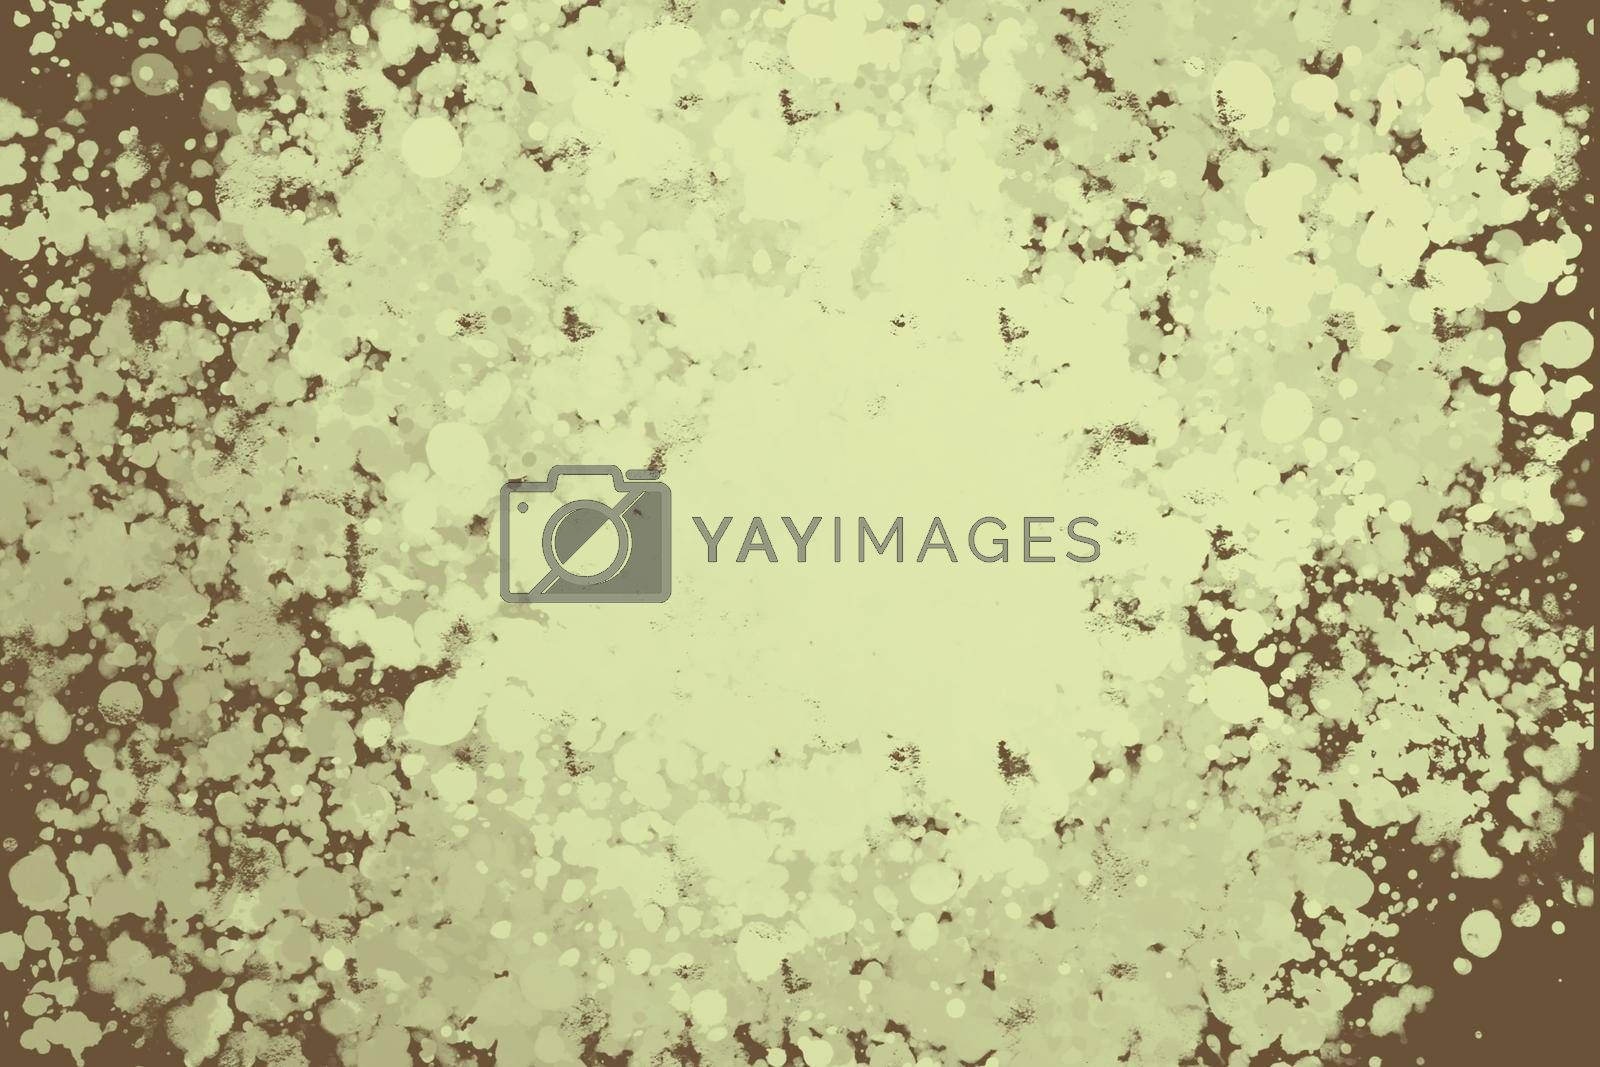 Abstract grunge background template with space for your text and image